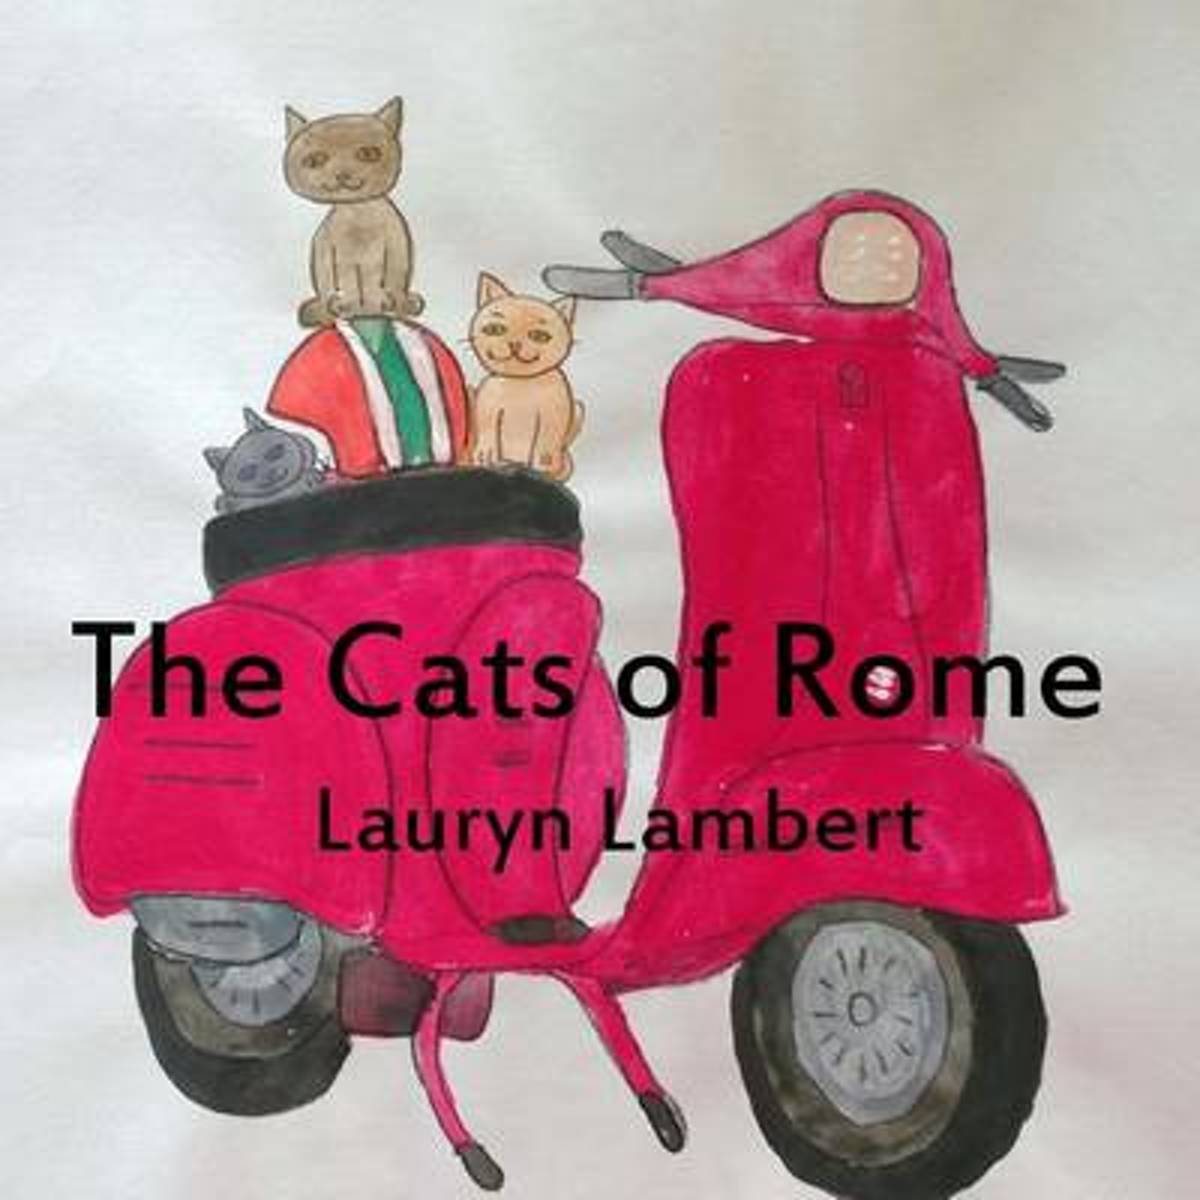 The Cats of Rome